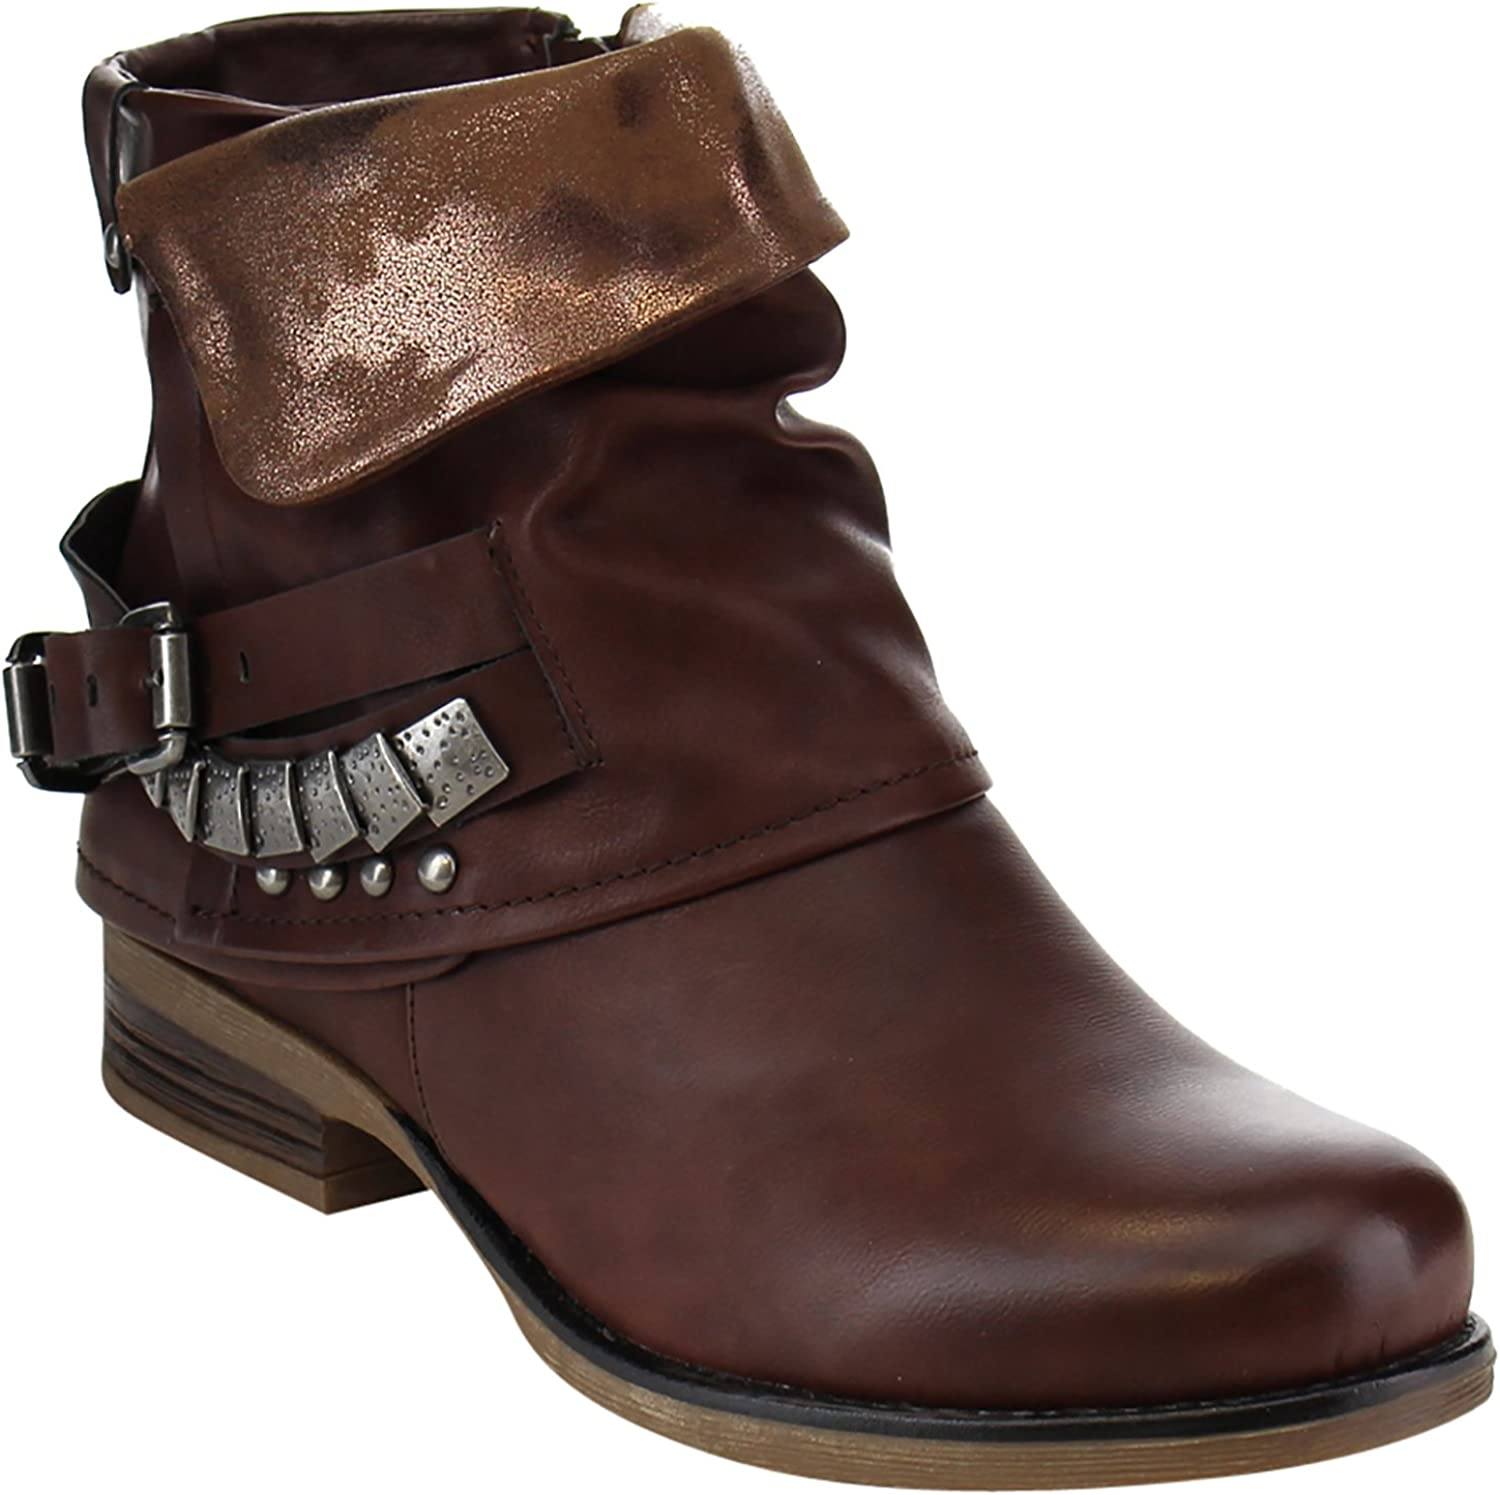 Fold-over Slouchy Buckled Strap Studs Ankle Booties Women's Boots